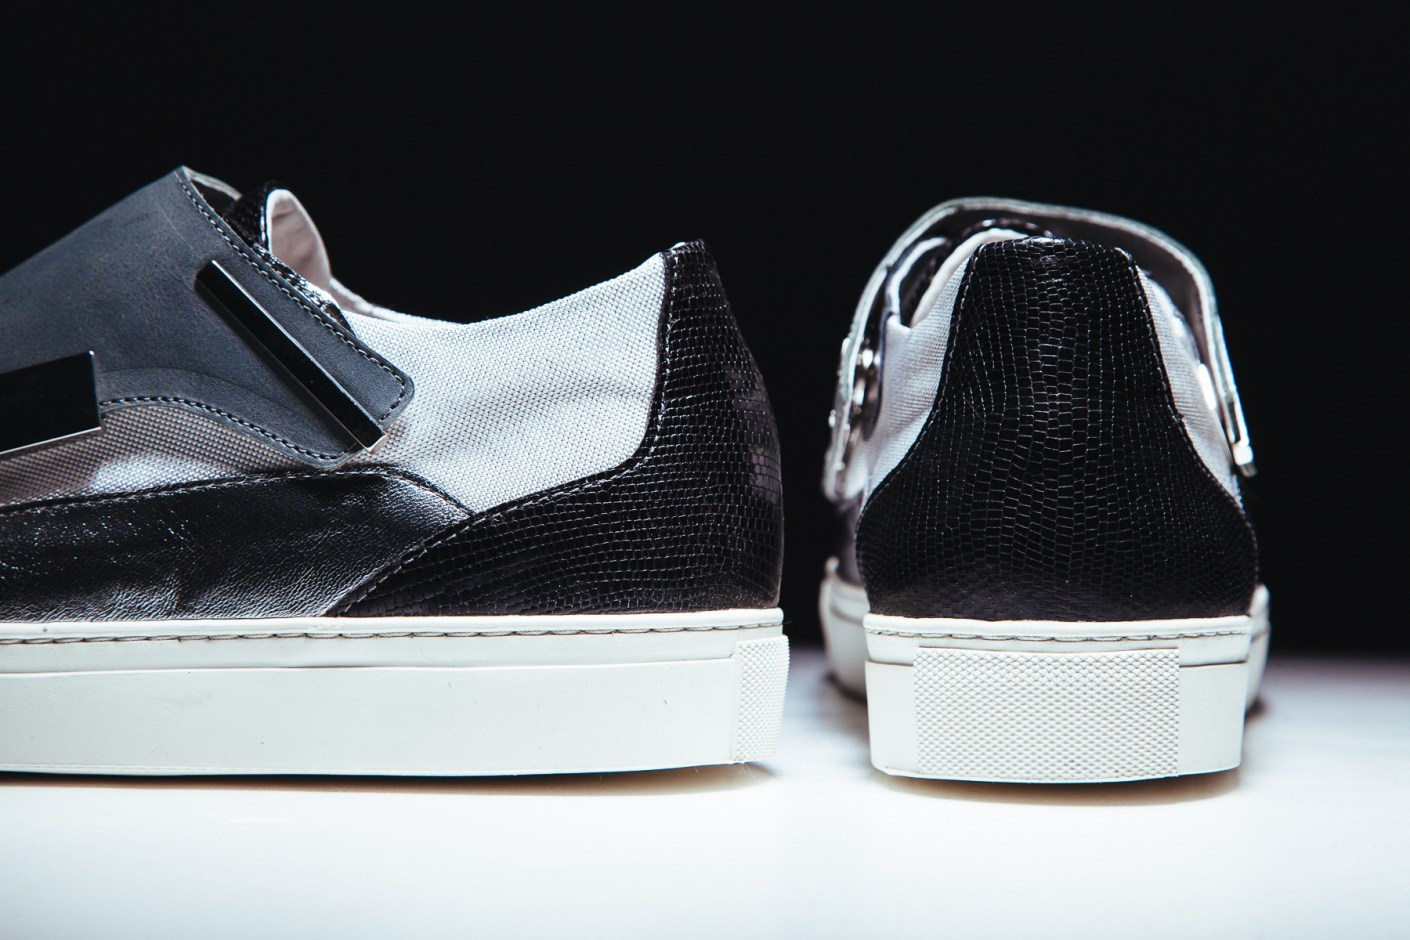 Image of Raf Simons 2014 Spring/Summer Removable Lace Guard Sneaker